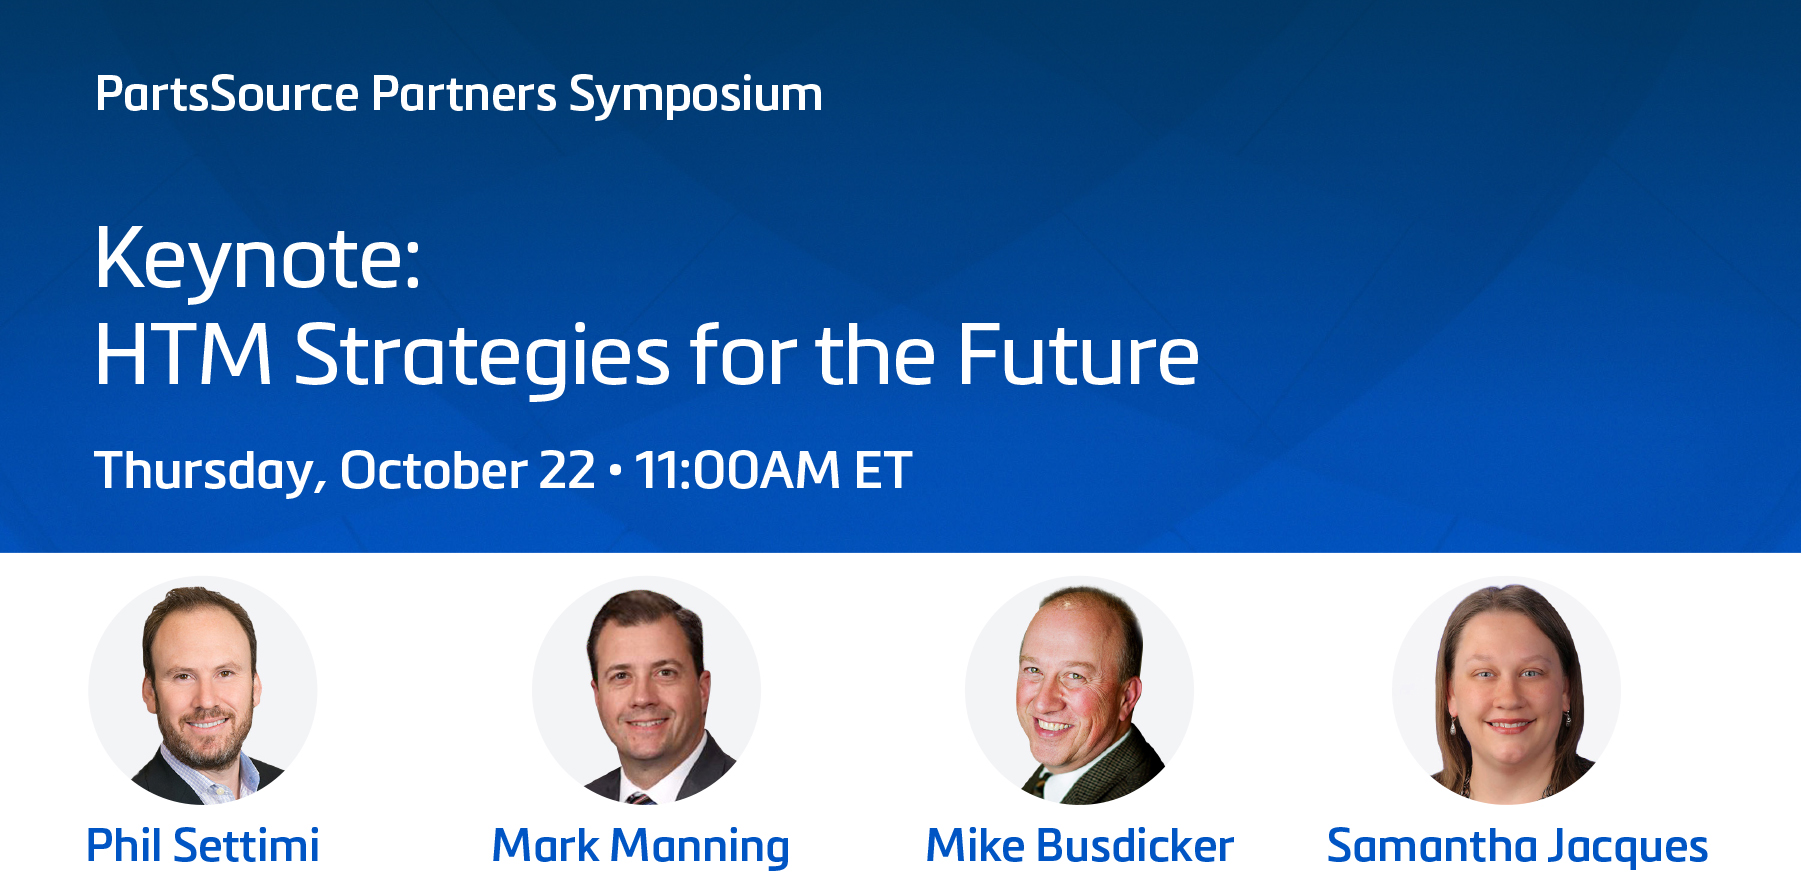 PartsSource Partners Symposium – Keynote: HTM Strategies for the Future